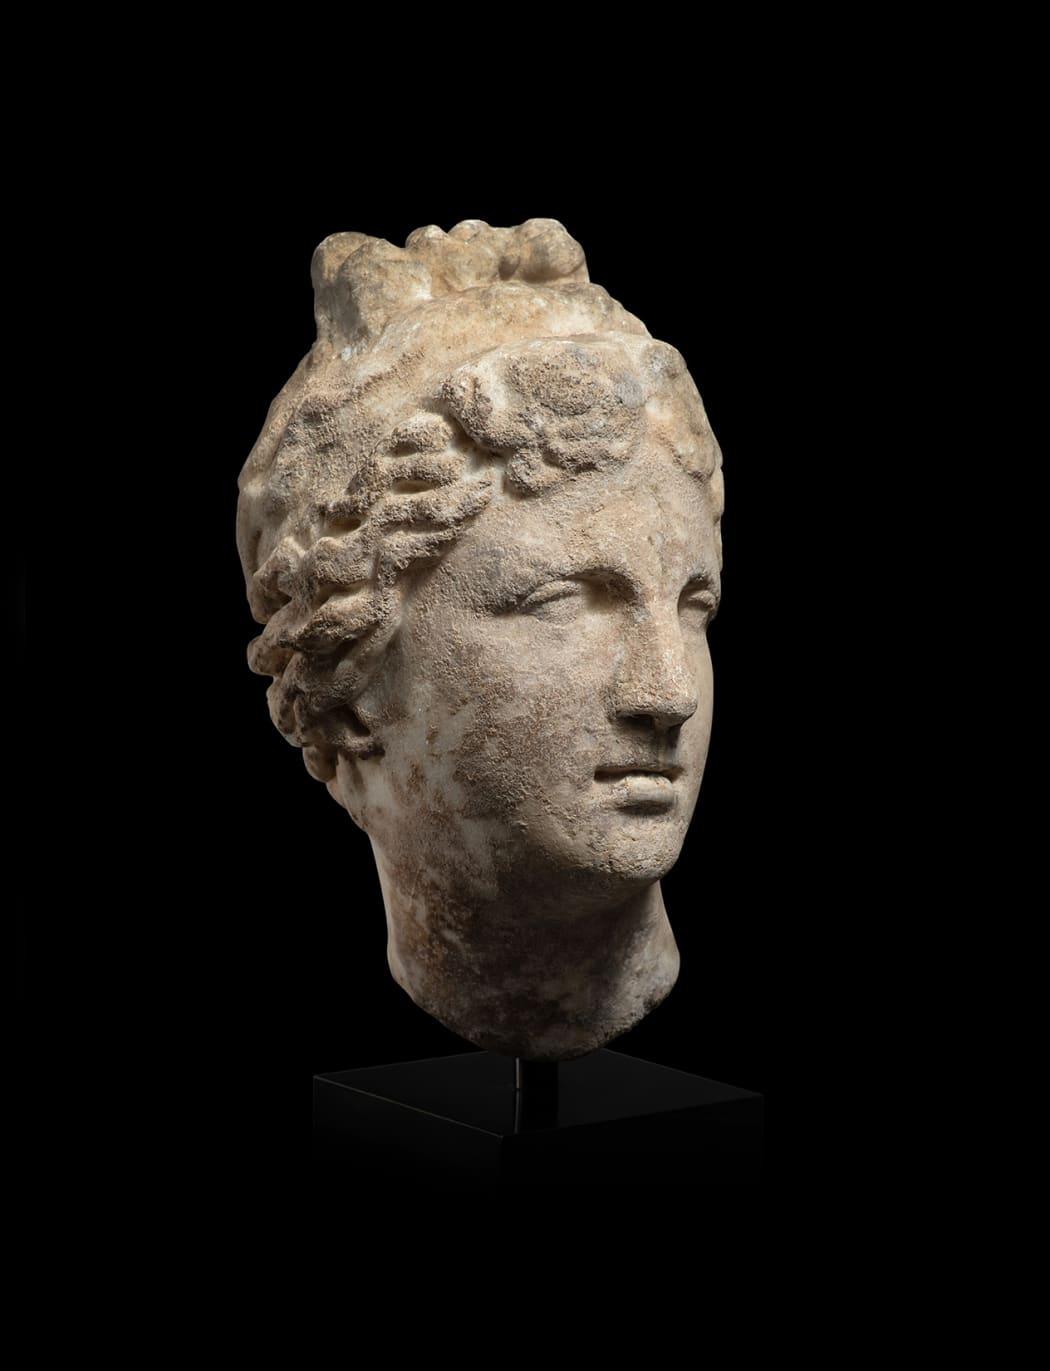 A ROMAN MARBLE HEAD OF VENUS, circa 1st - 2nd century AD